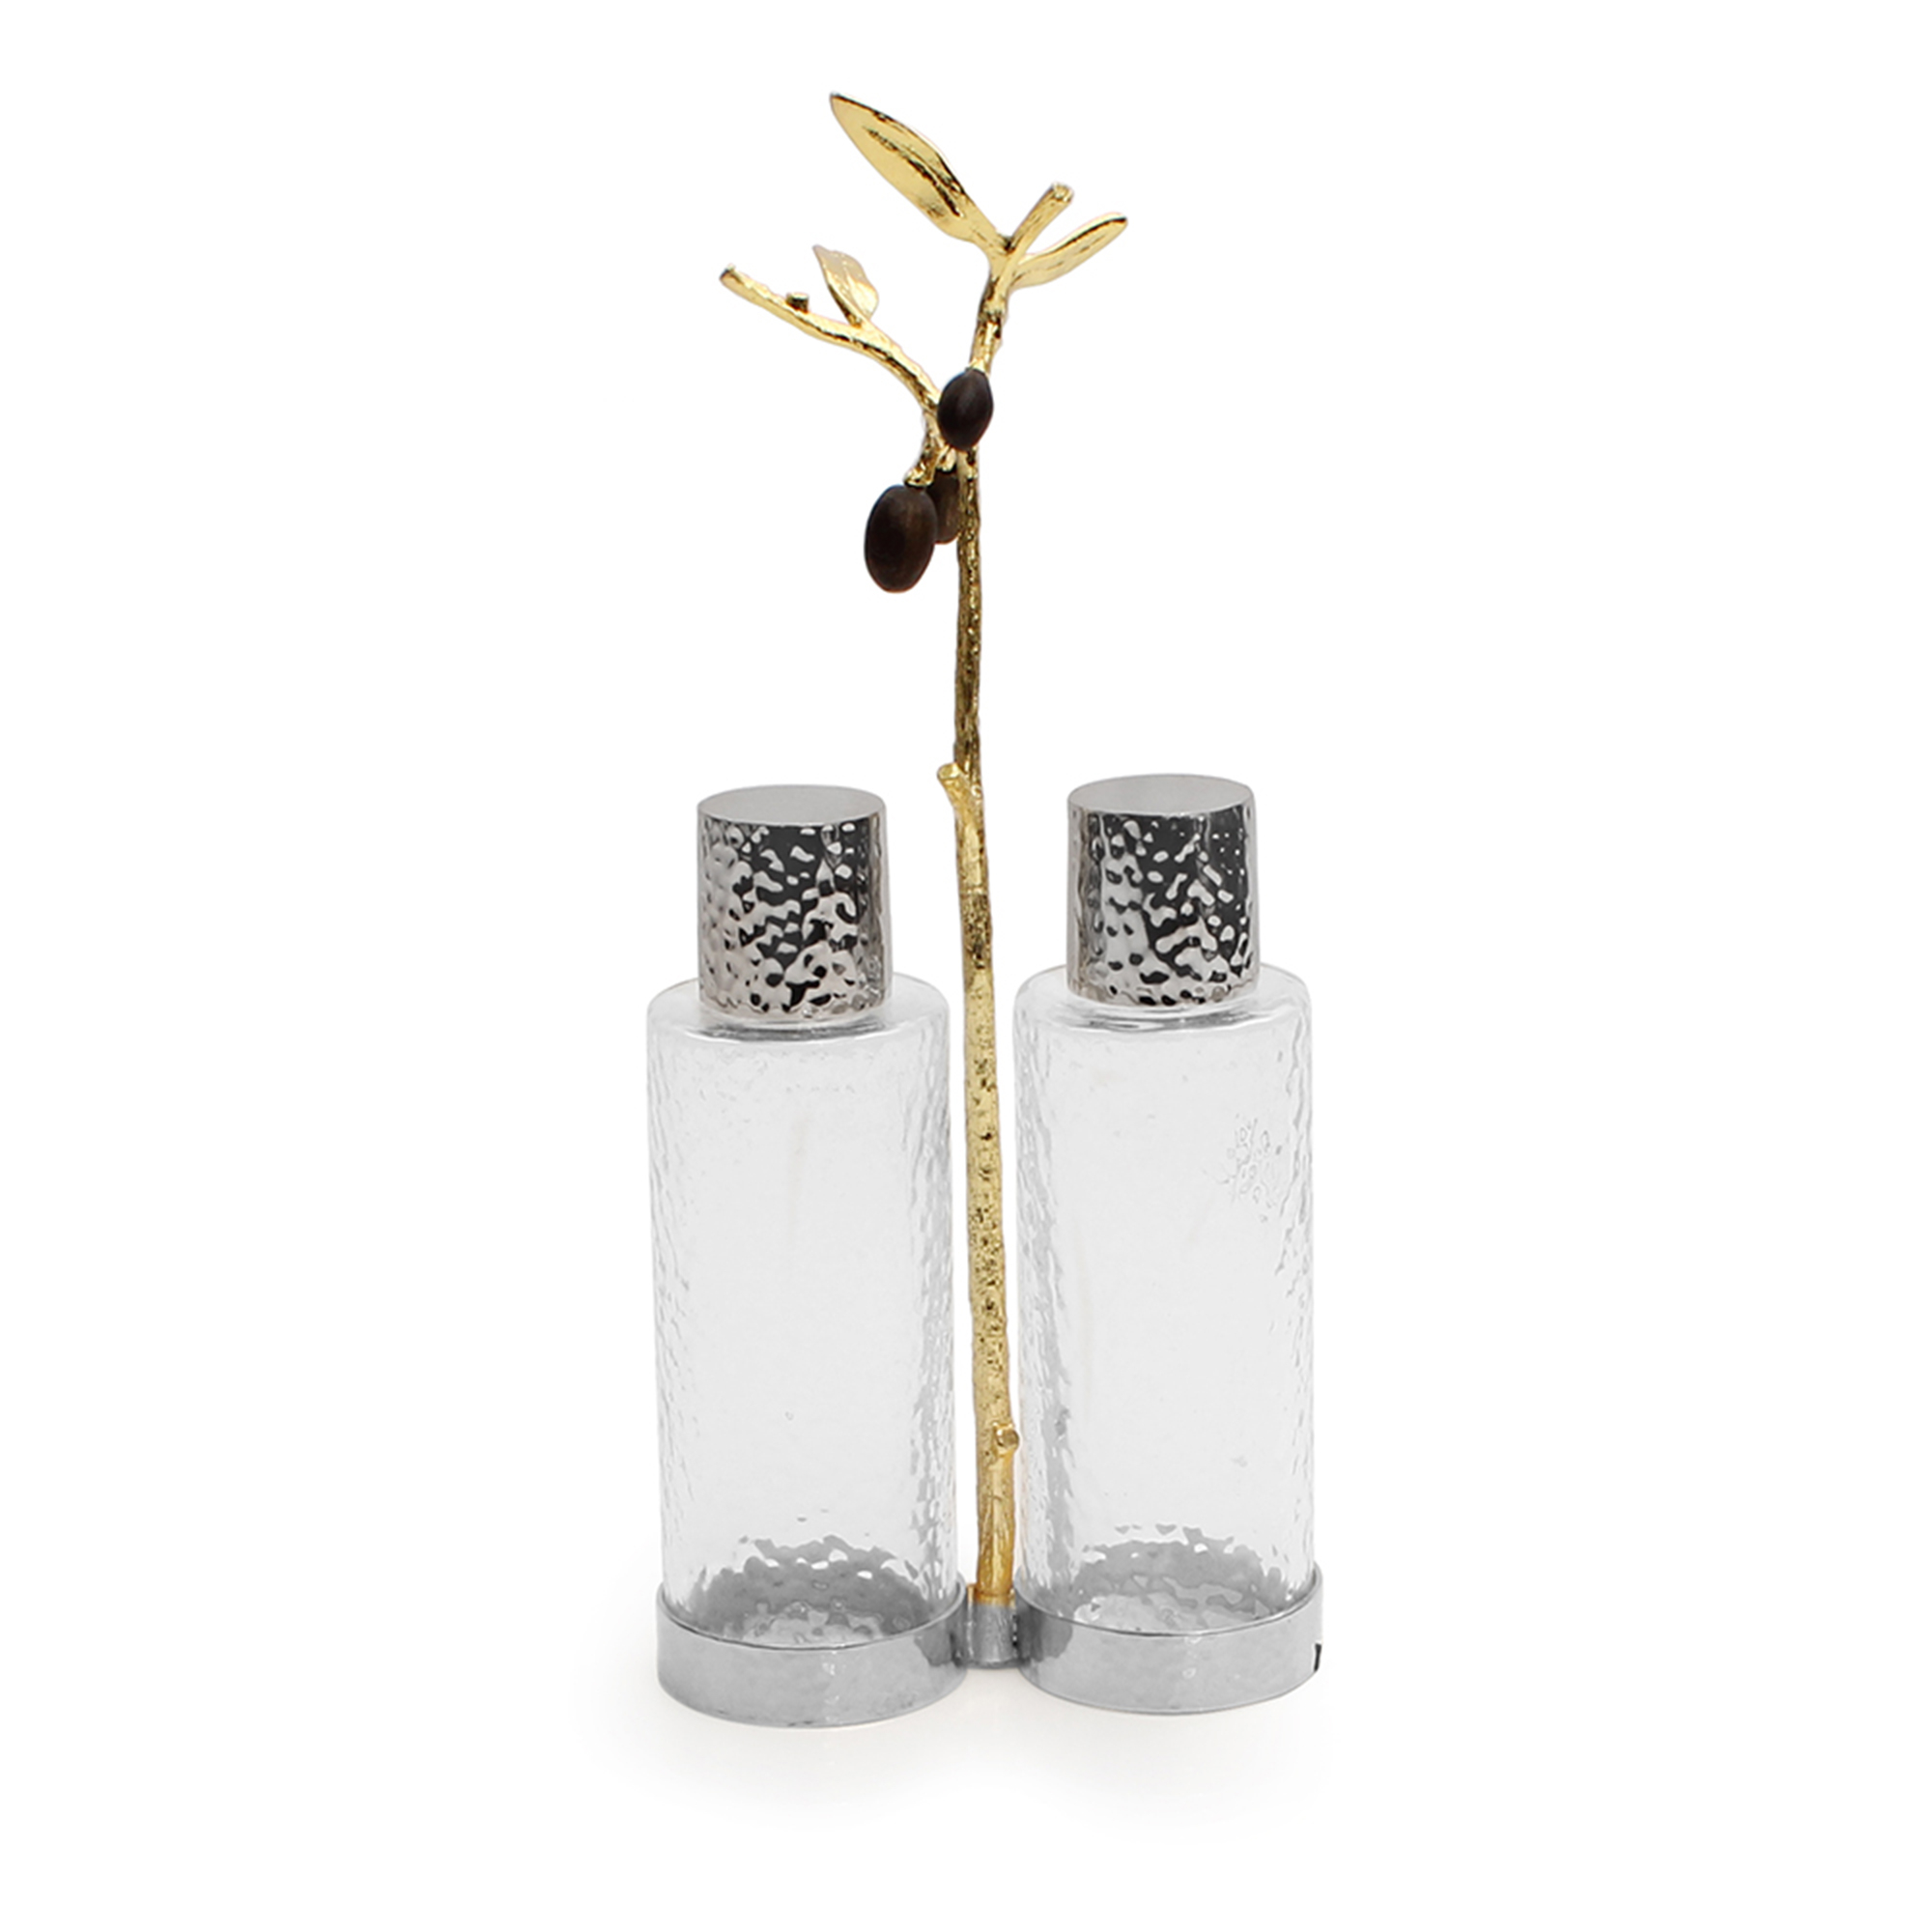 Michael Aram Olive Branch Gold Cruet Caddy